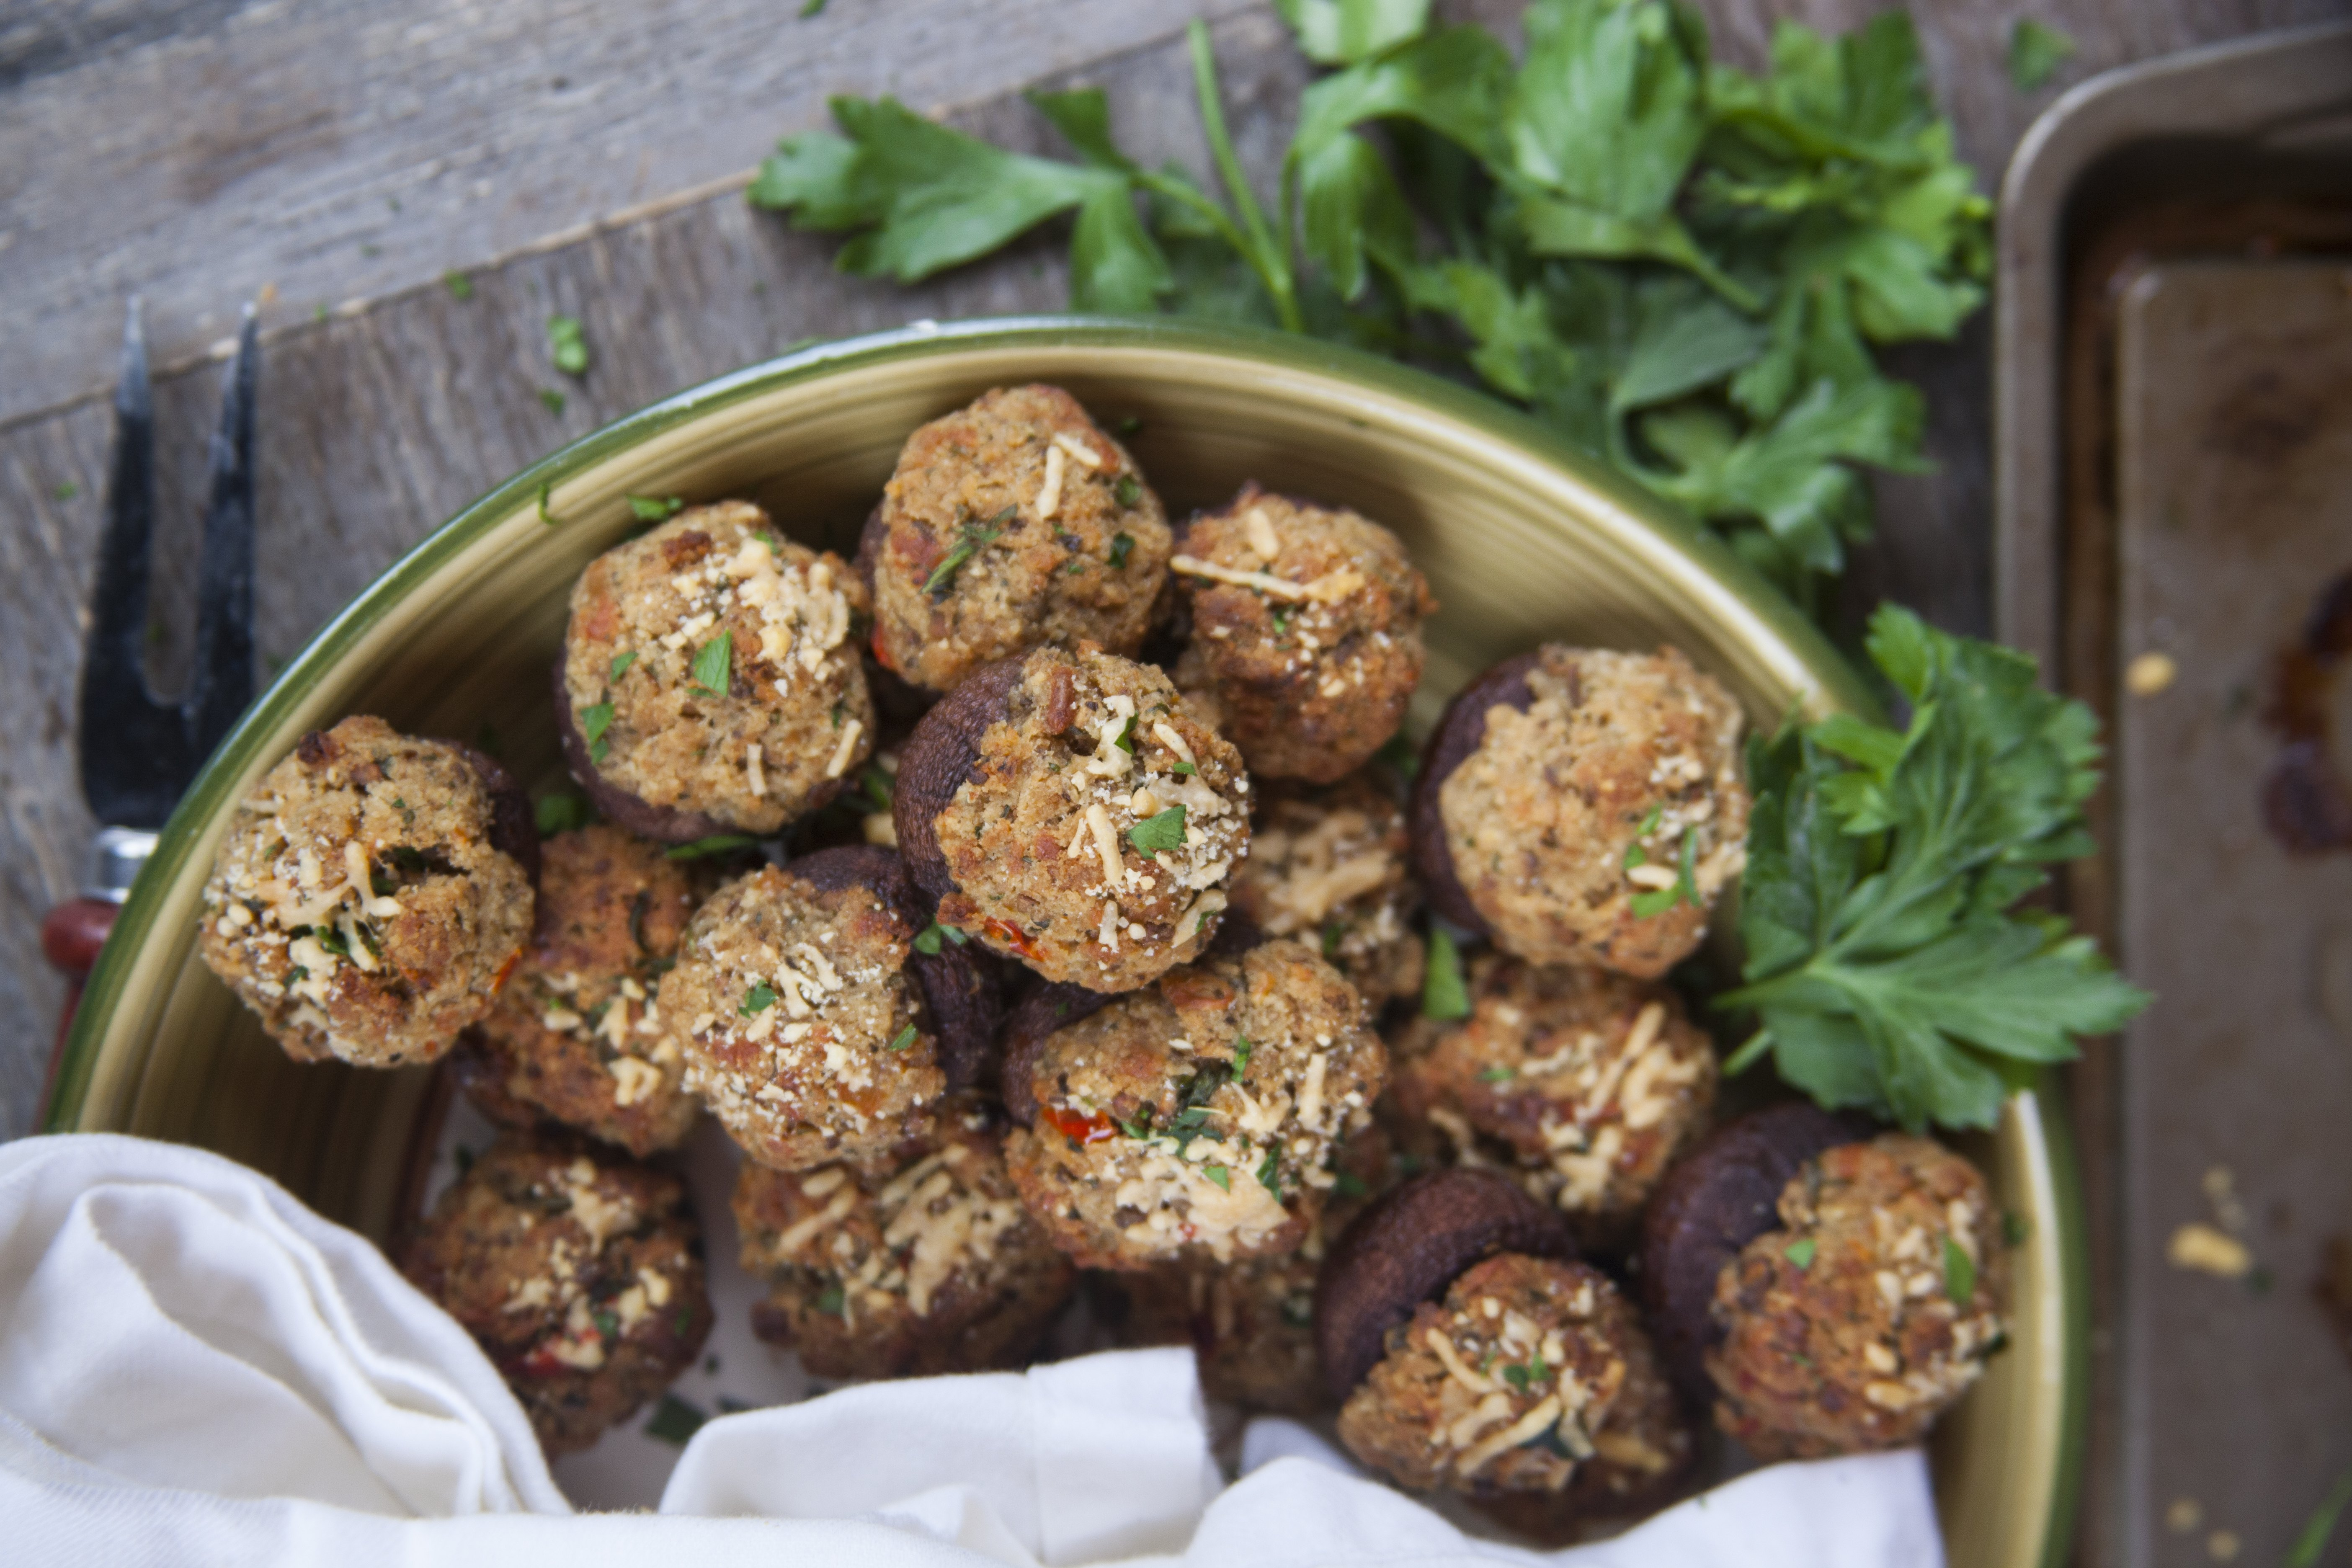 How to Cook Mushrooms in the Oven